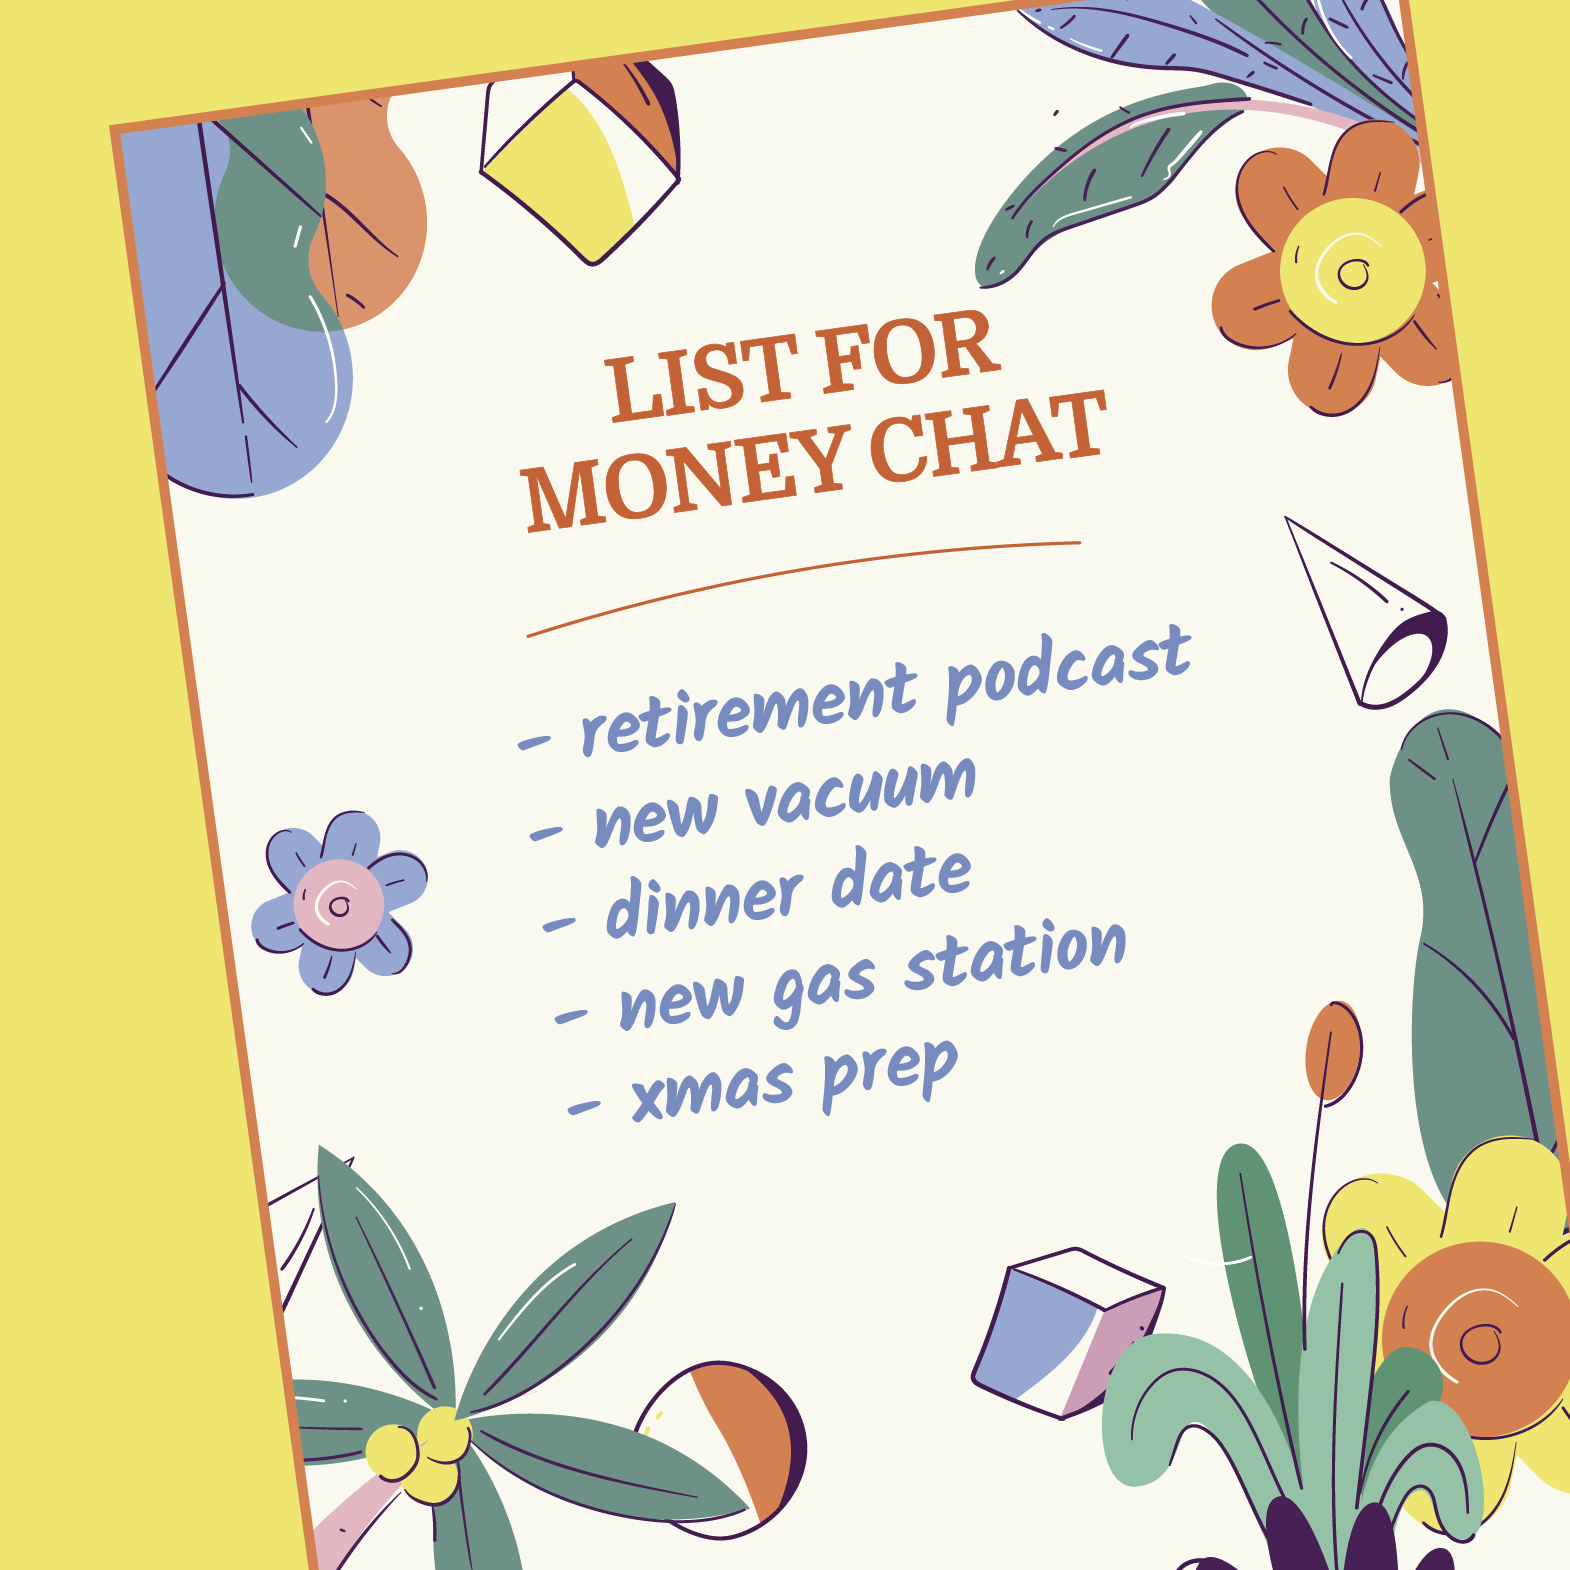 A list of potential topics for a chat about money